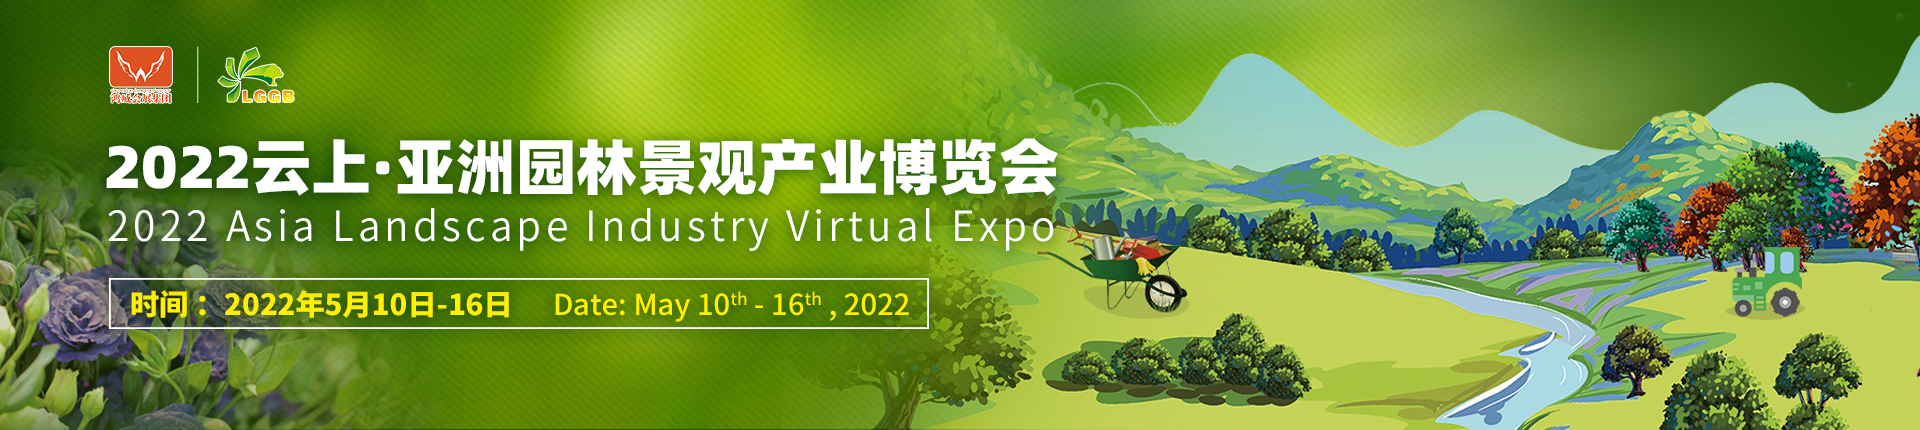 2022 Asia Landscape Industry Virtual Expo